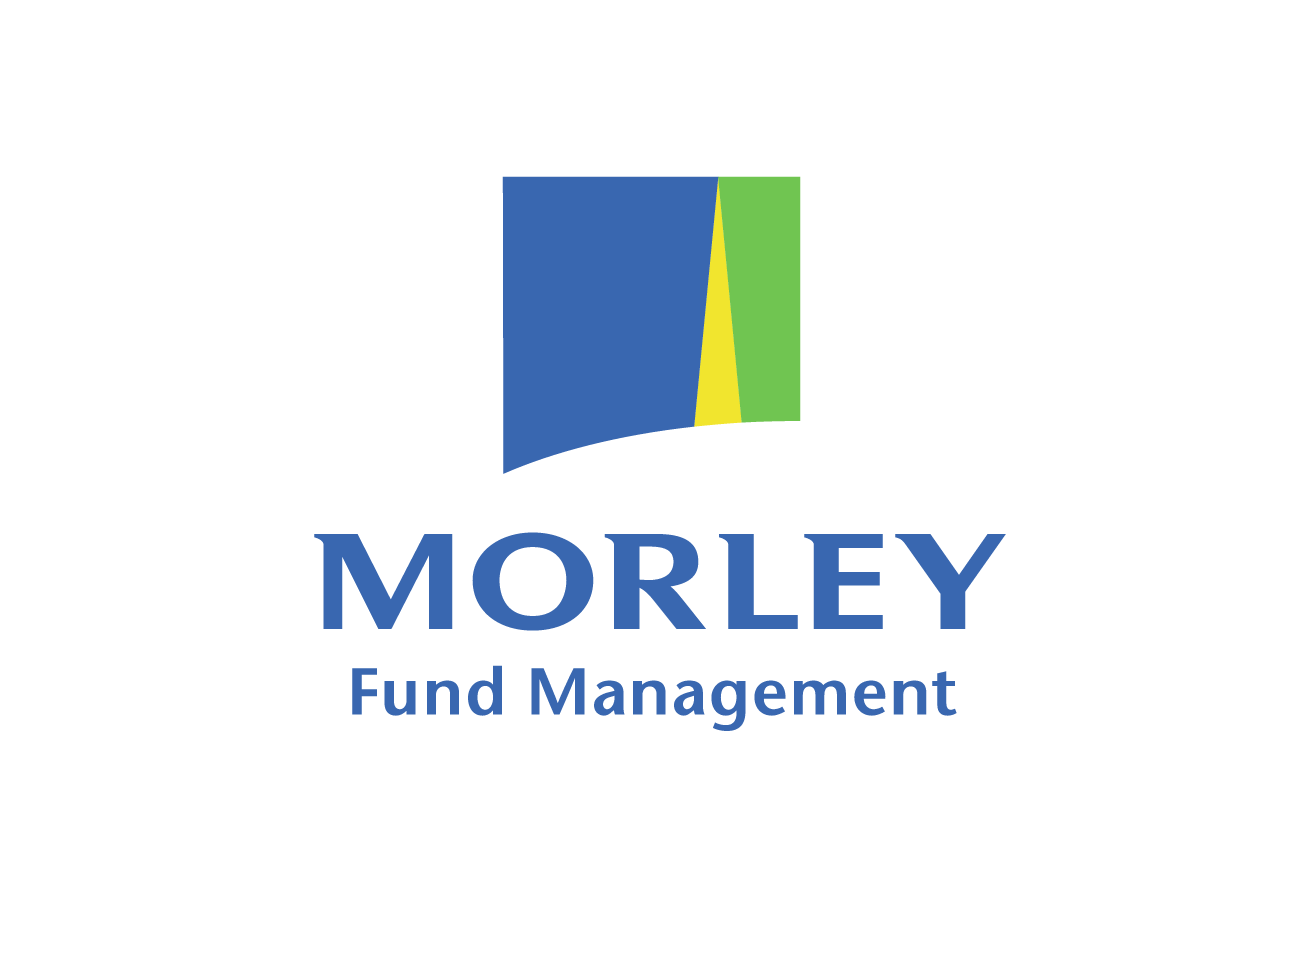 Morley Fund Management